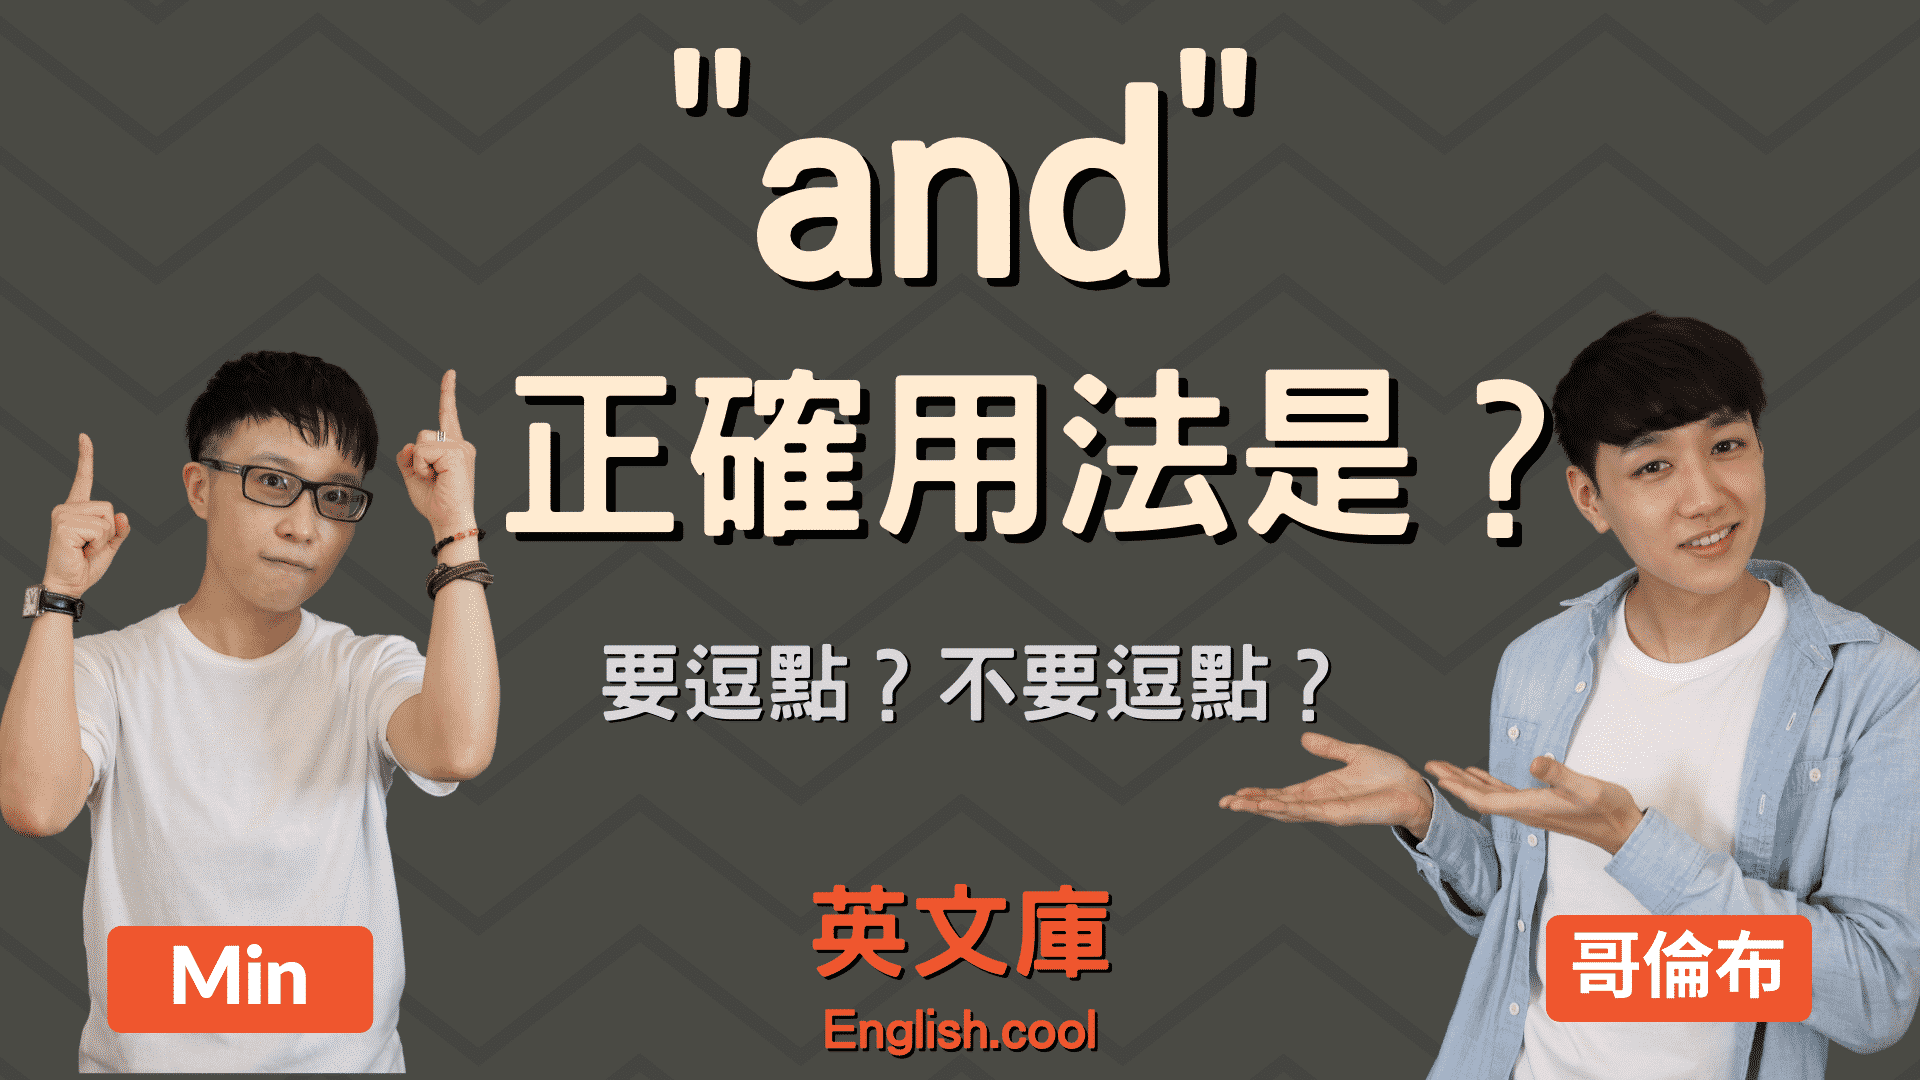 You are currently viewing 「and」正確用法是?前面要加逗點嗎?